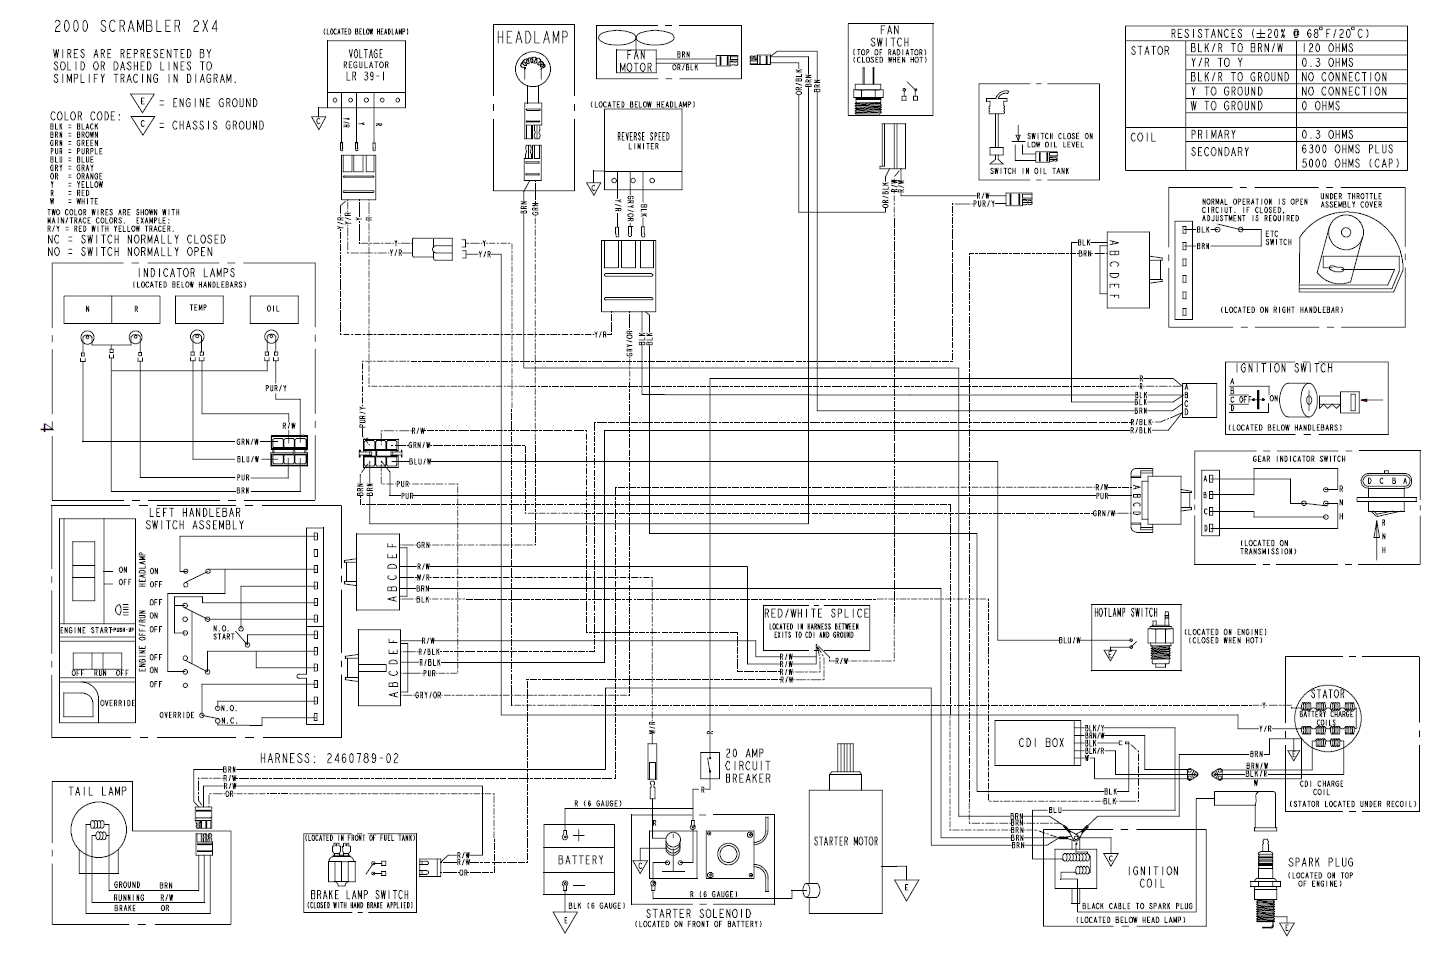 polaris rzr wiring diagram 3e4f2 polaris ranger 800 eps 2014 wiring diagram wiring library polaris rzr 1000 wiring diagram 3e4f2 polaris ranger 800 eps 2014